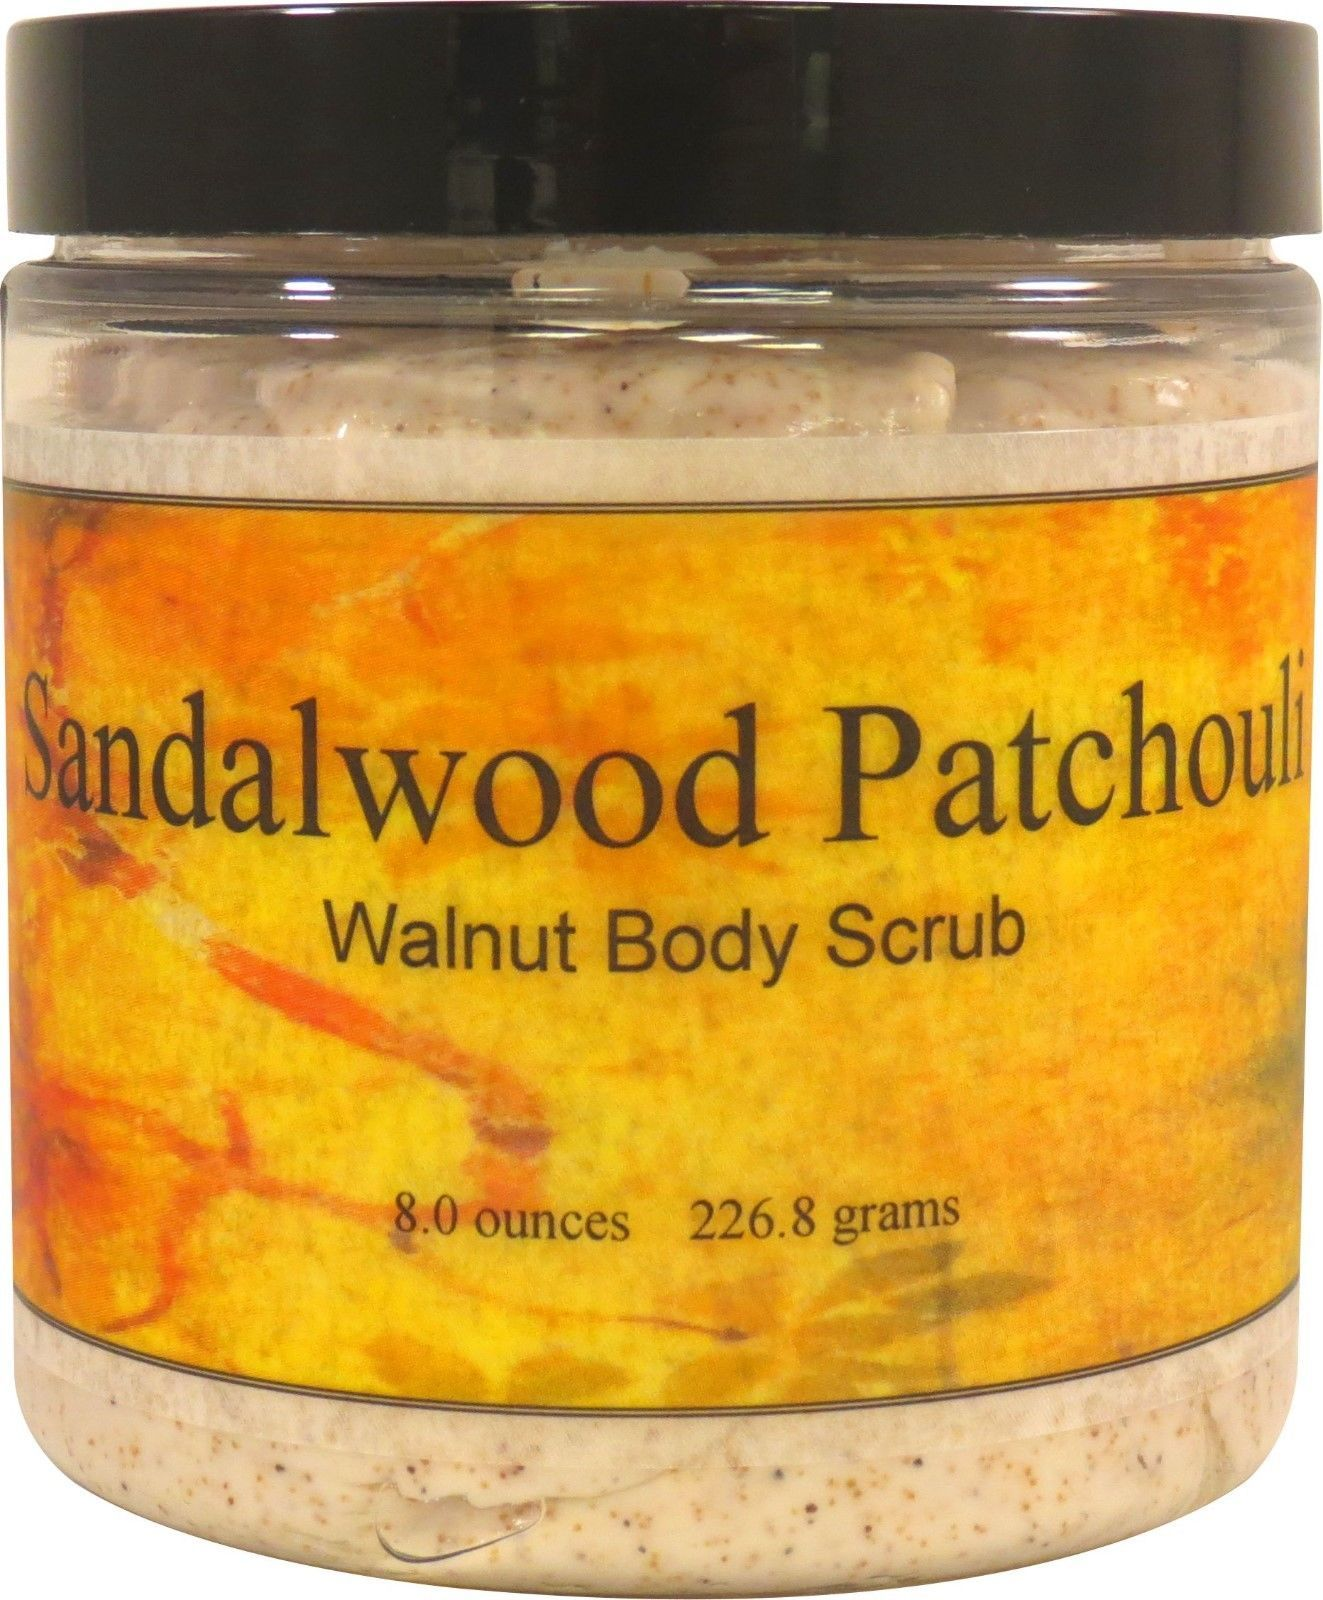 Sandalwood Patchouli Walnut Body Scrub